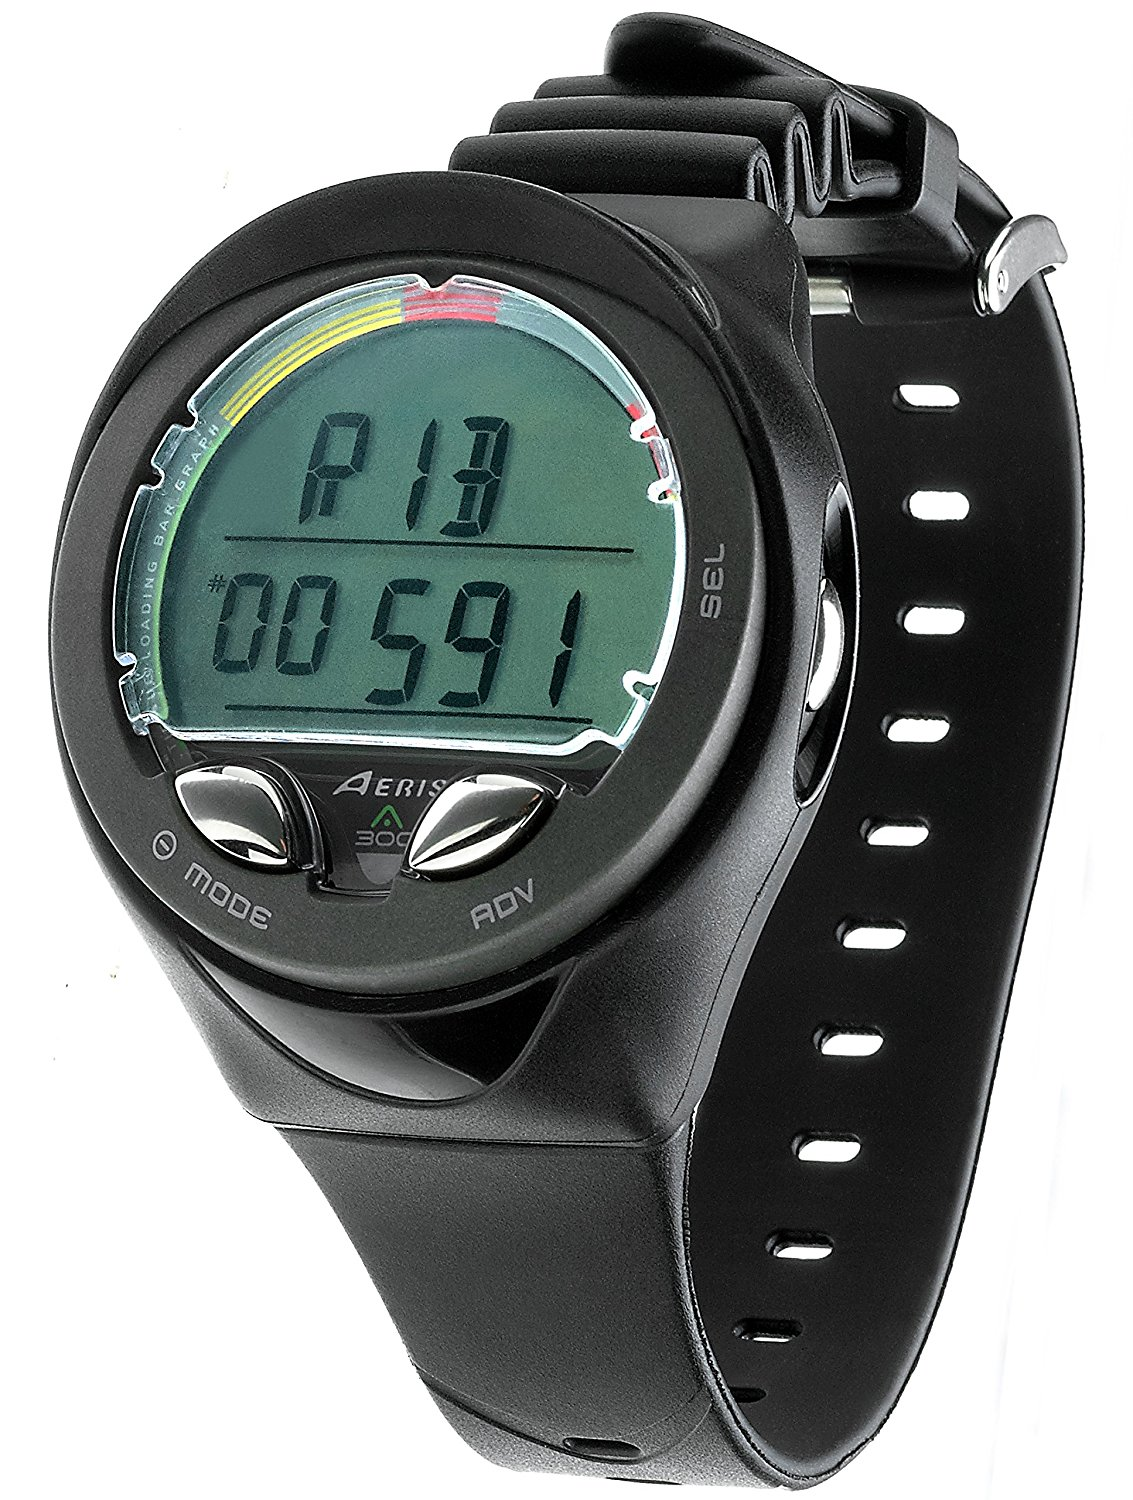 New AERIS A300 Scuba dive watches, Wrist Dive Computer